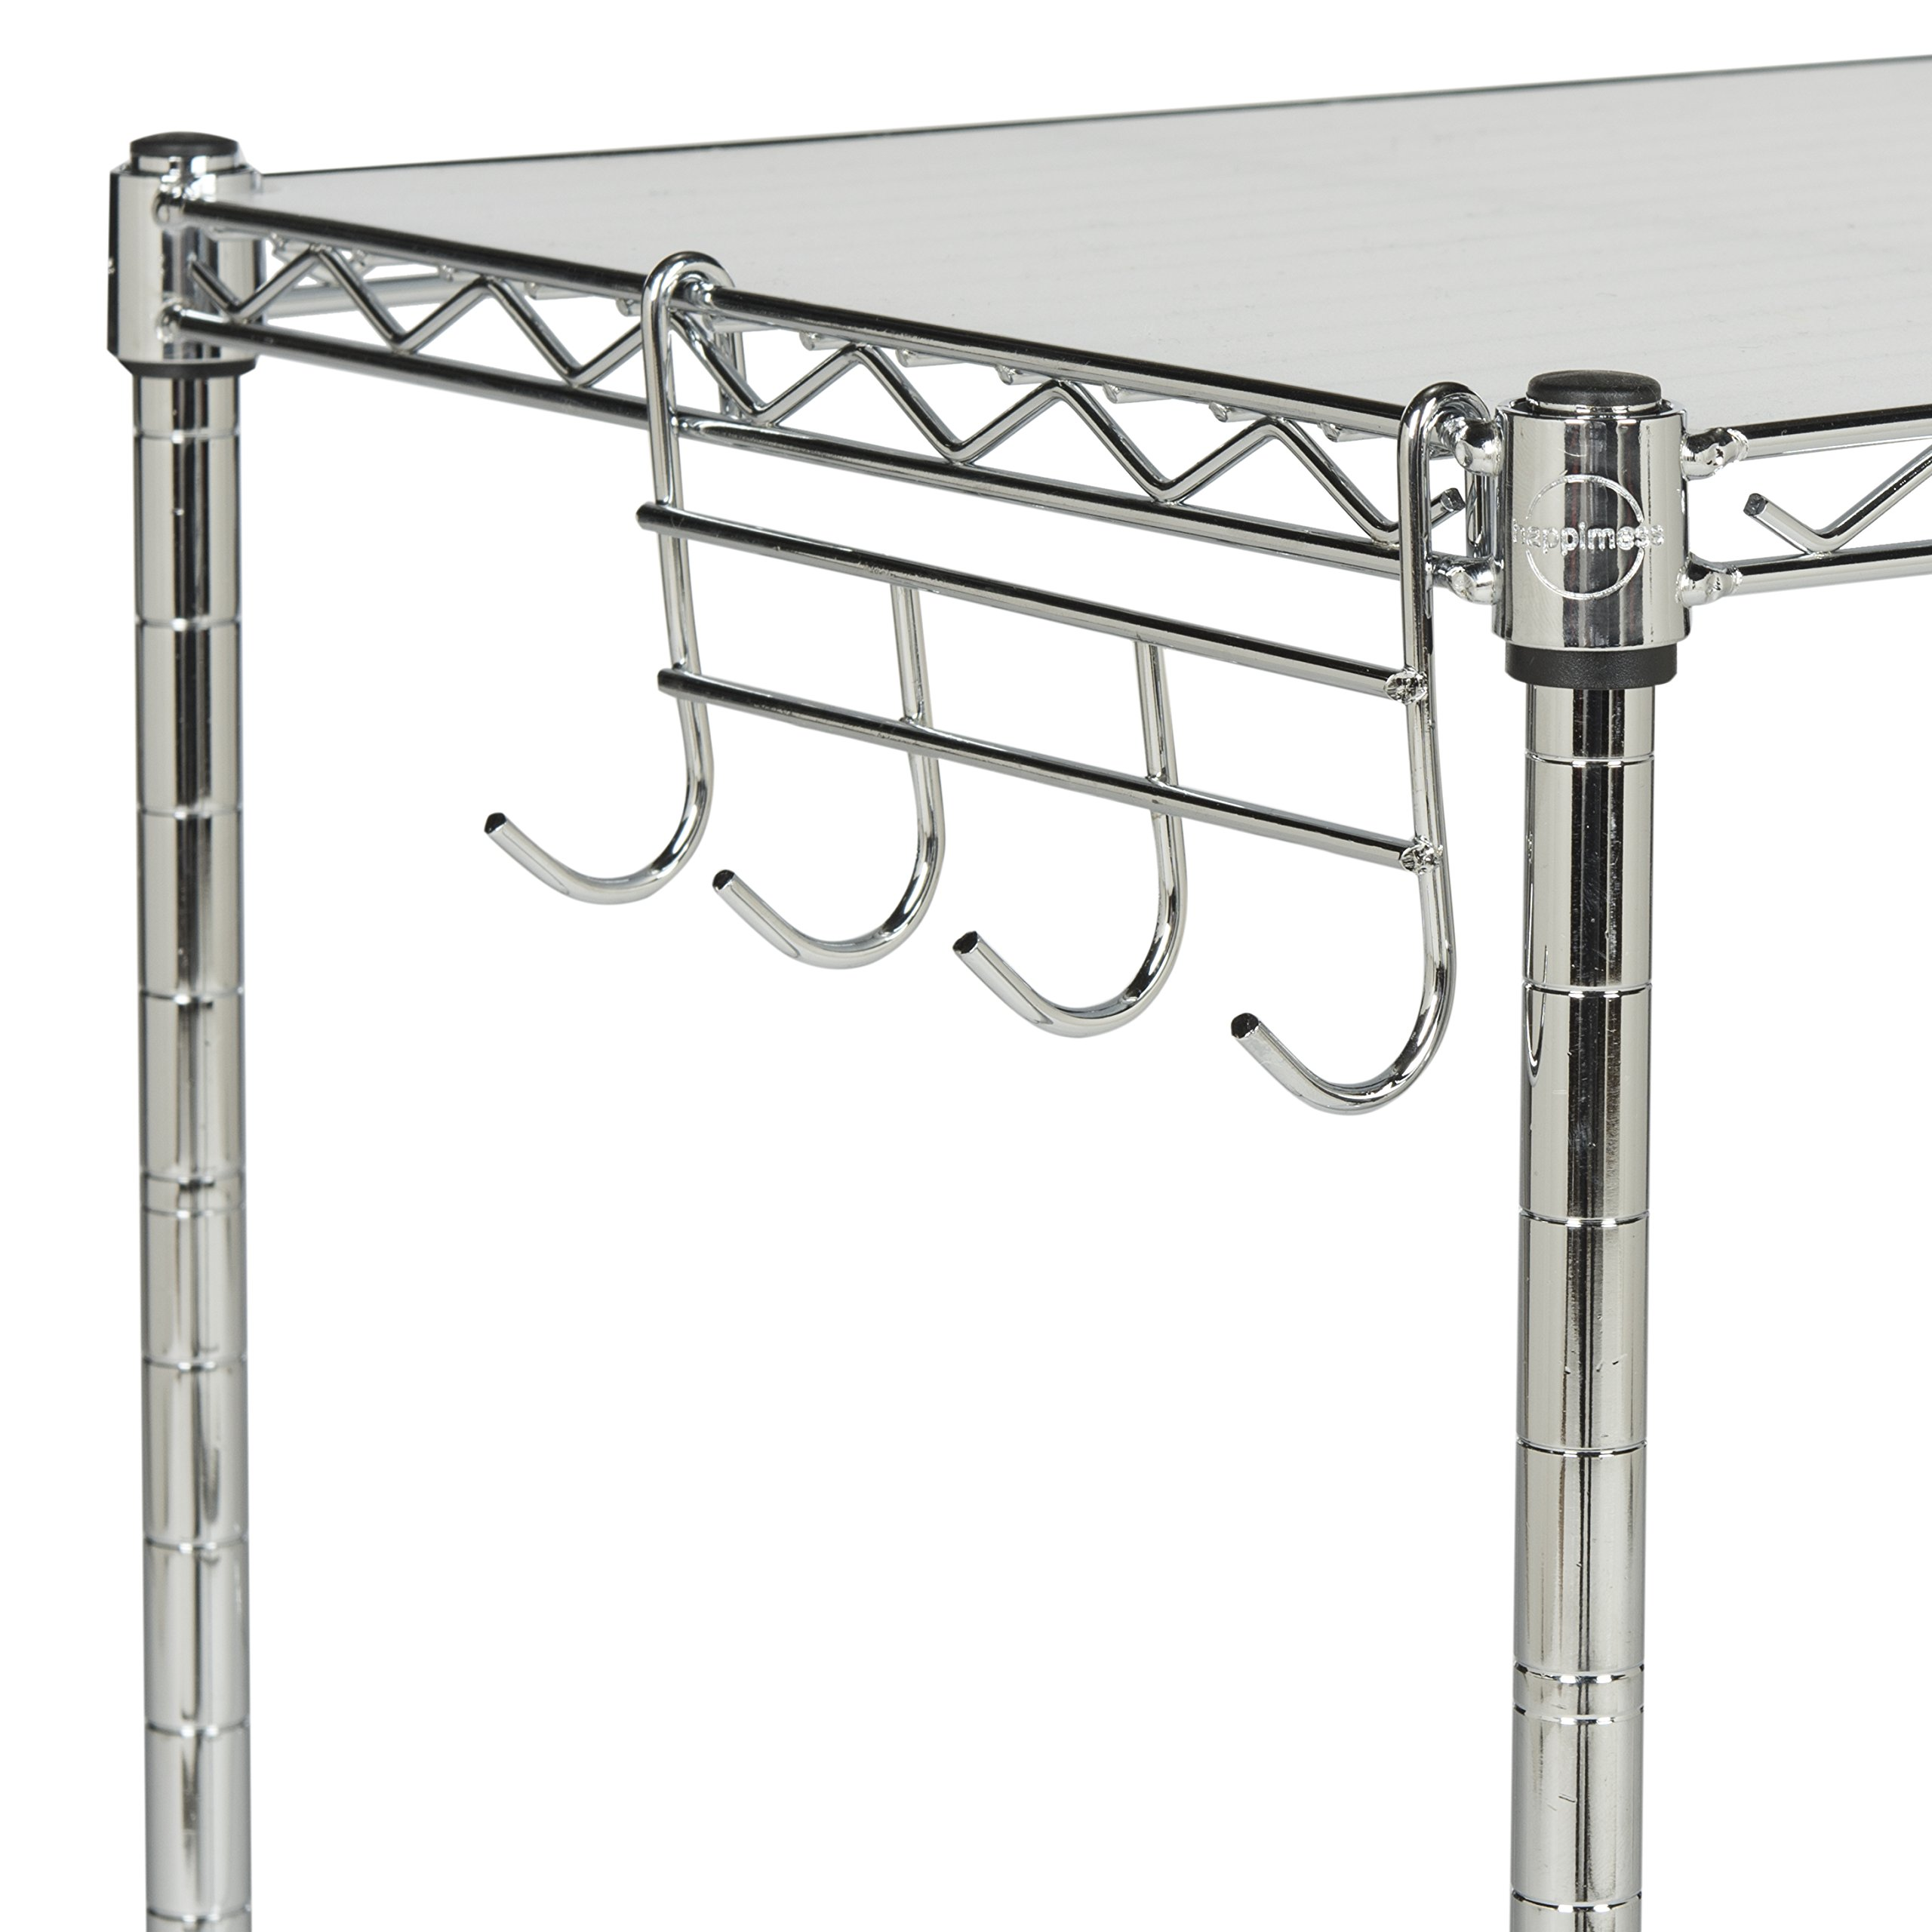 happimess HPM5013A Racking, 19.69 in. W x 11.81 in. D x 23.62 in. H, Silver by happimess (Image #5)